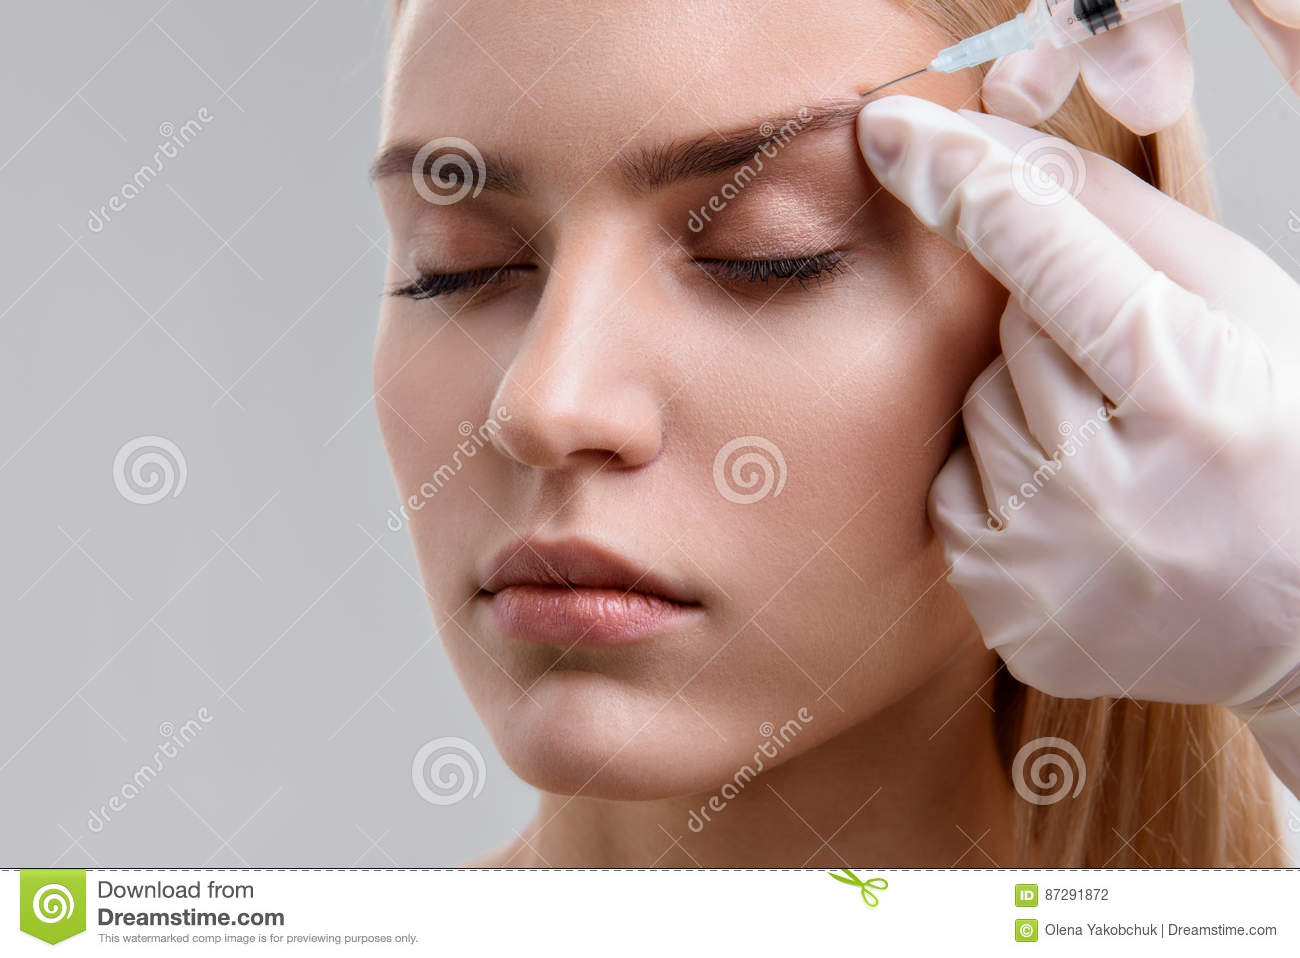 How does a person rejuvenate Botox